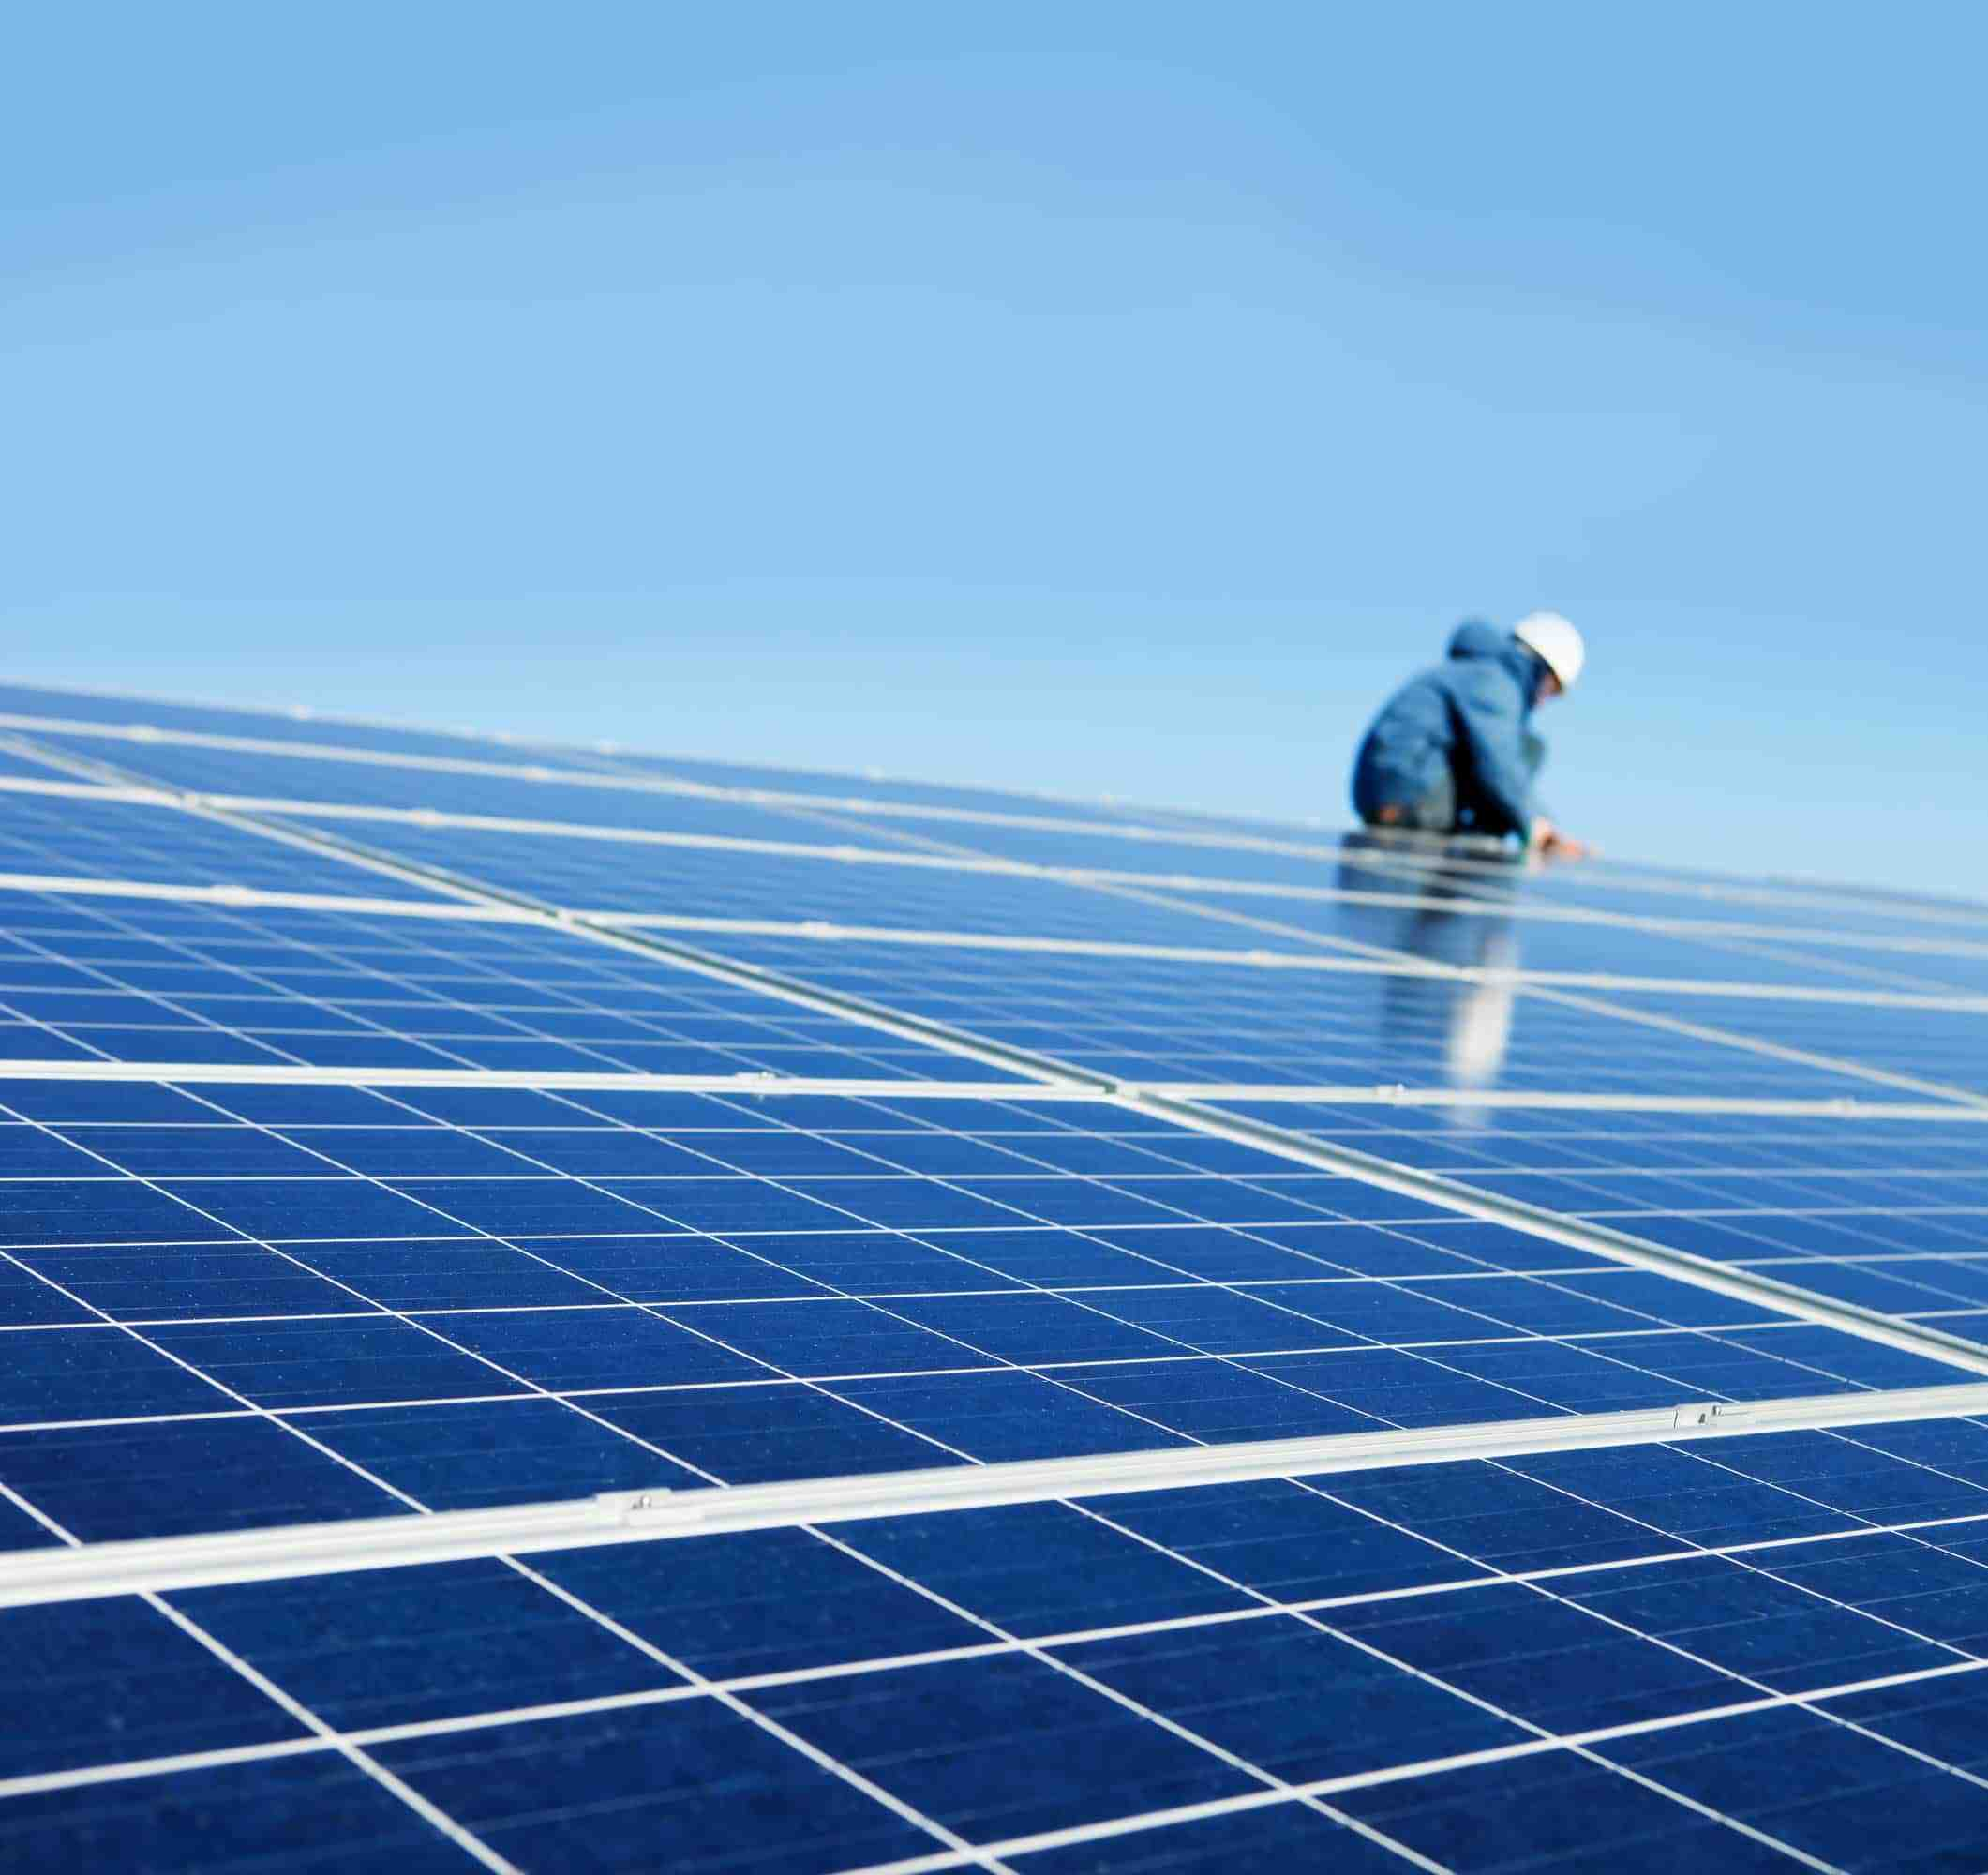 Do solar panels need to be inspected?